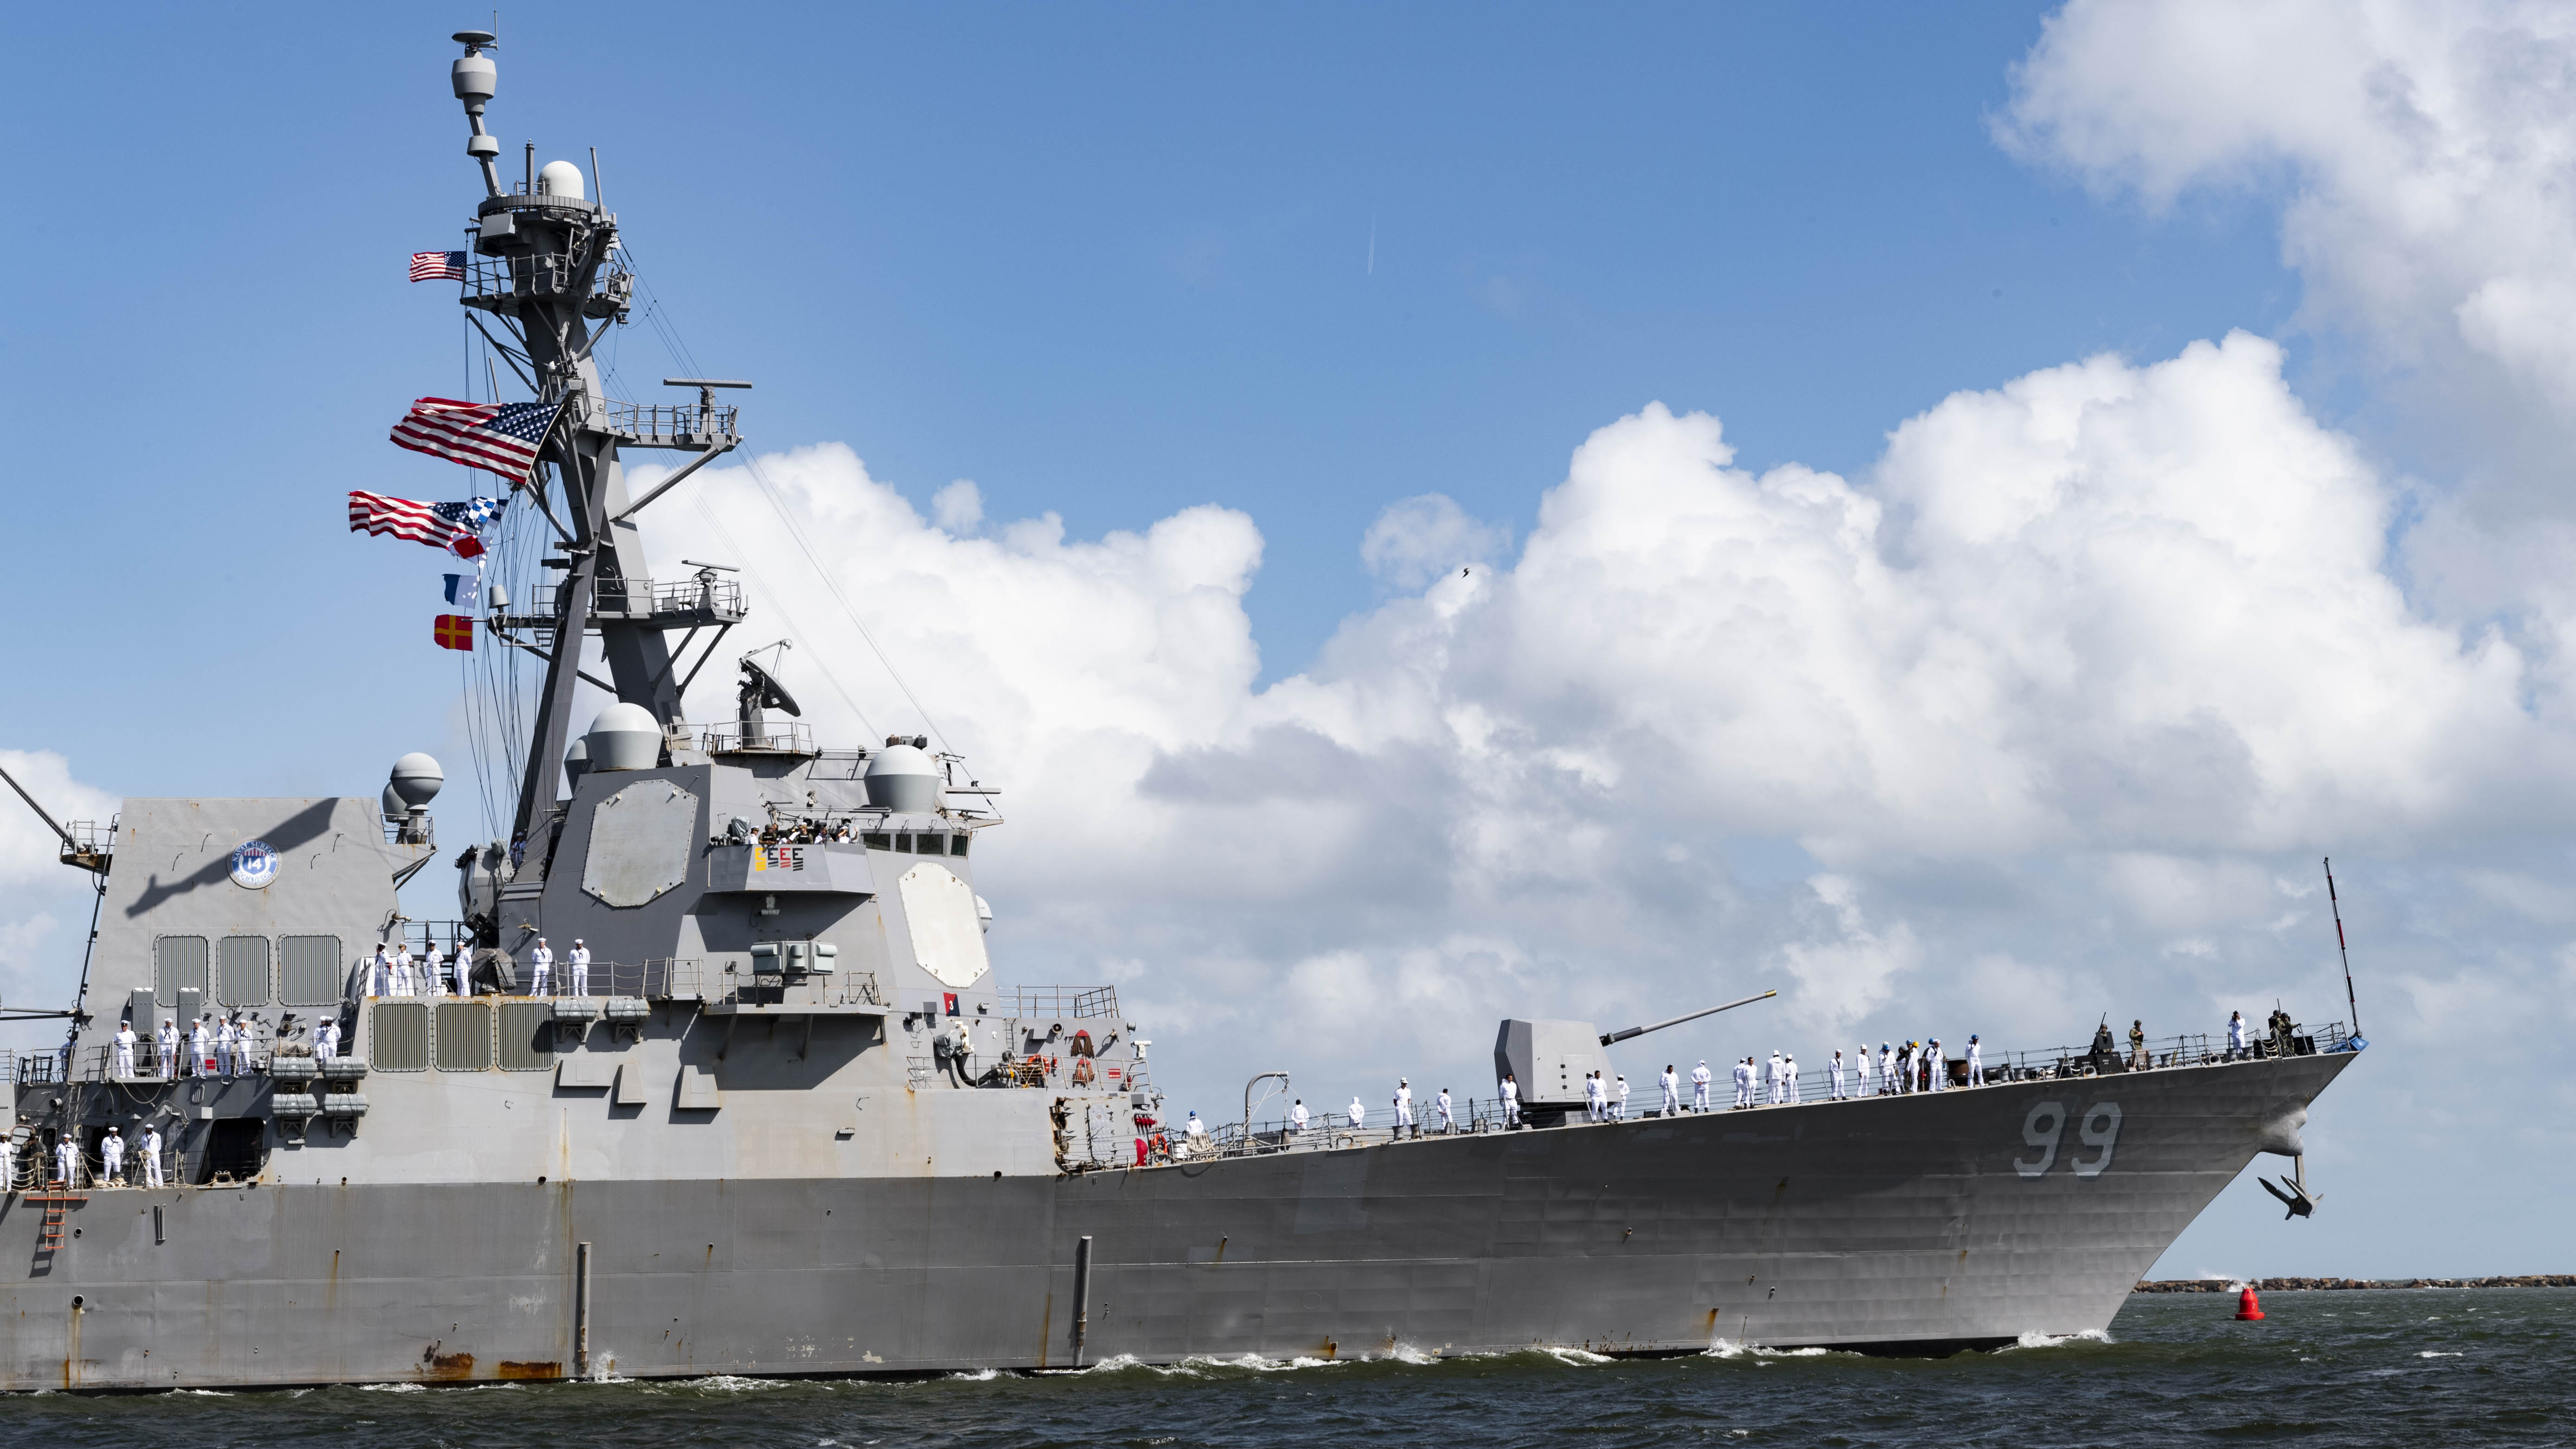 Mayport, Fla. (Sept. 14, 2019) The Arleigh Burke-class guided-missile destroyer USS Farragut (DDG 99) departs Naval Station Mayport. Farragut is among ships and units from the Harry S. Truman Carrier Strike Group that formed a Surface Action Group (SAG) and are deploying from their East Coast homeports of Norfolk, Va. and Mayport, Fla.  Photo by Mass Communication Specialist 2nd Class Anderson [  ].